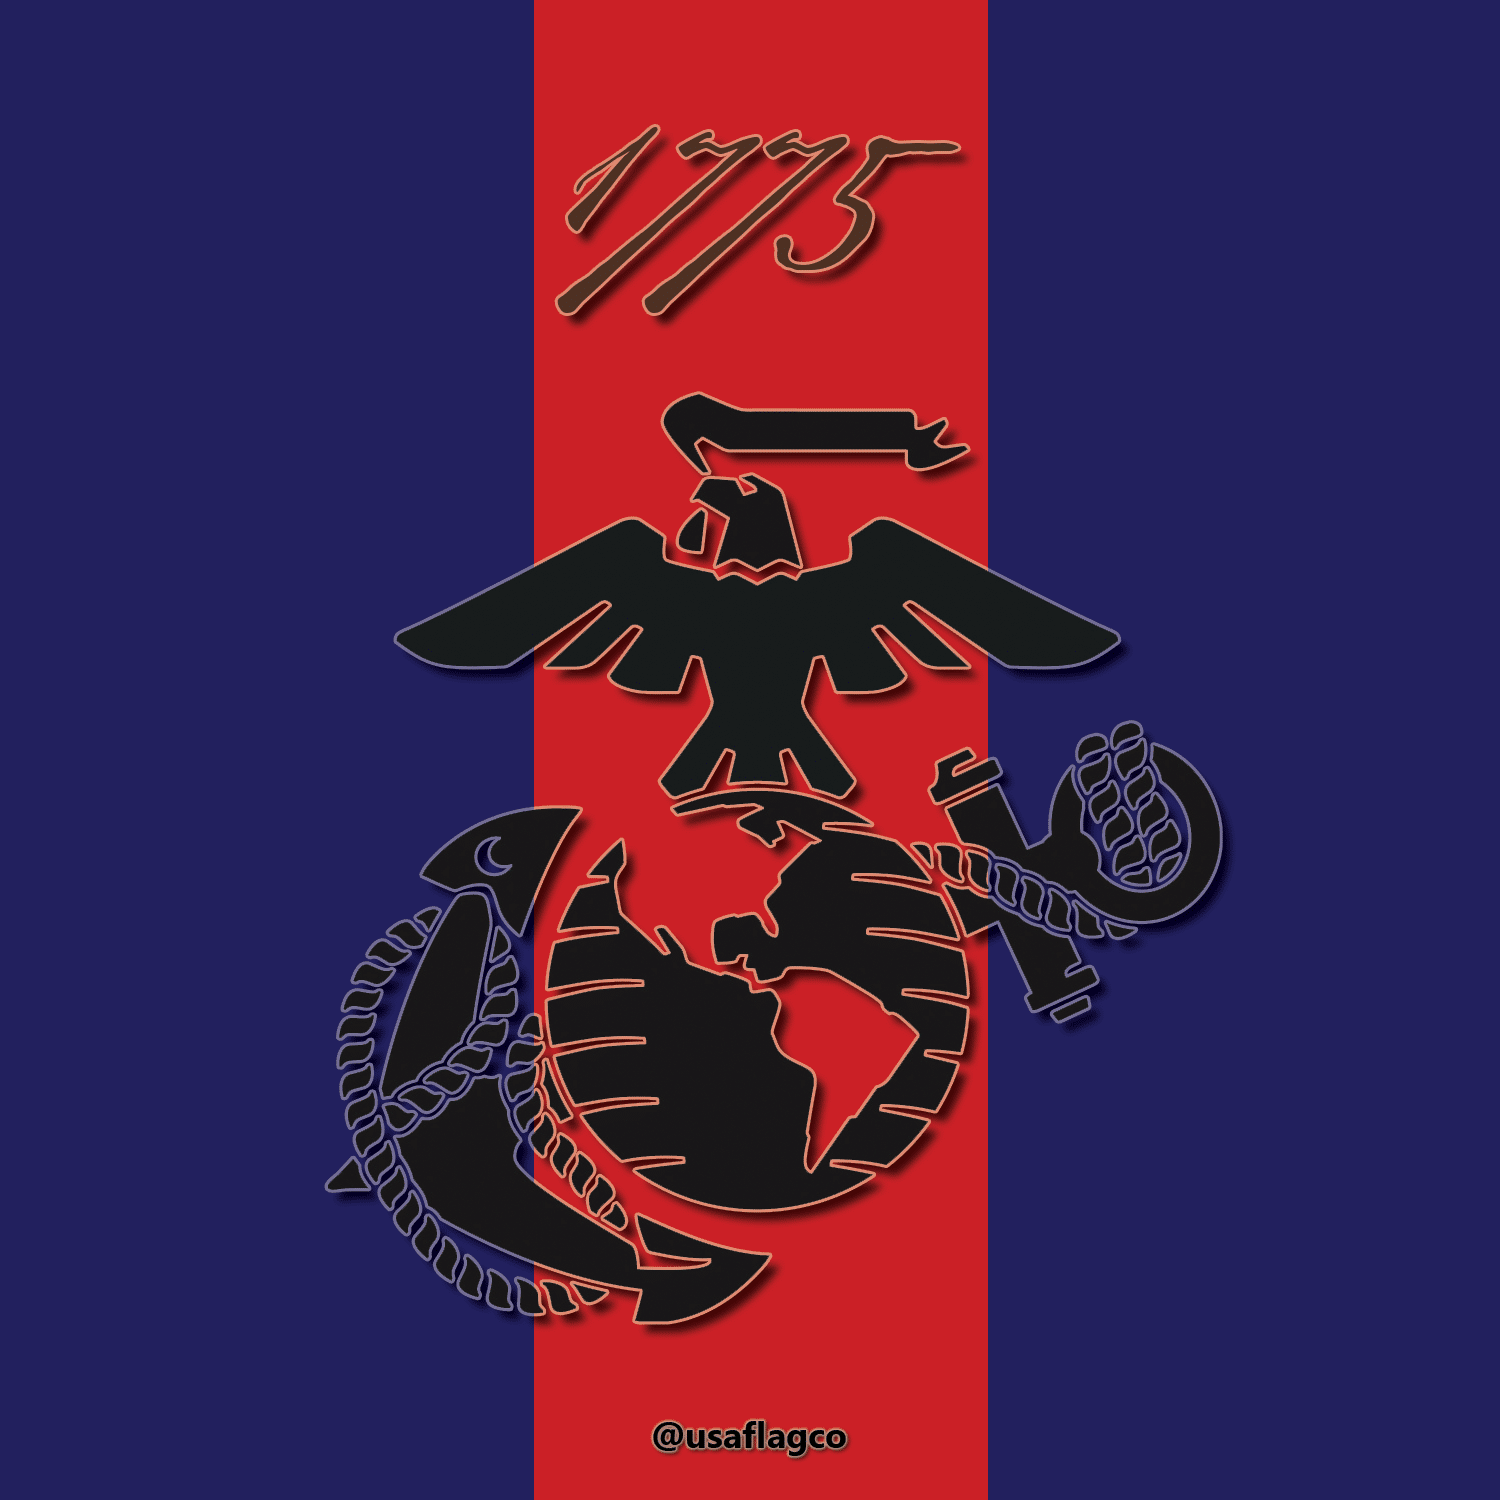 The United States Marine Corps was created on Nov. 10, 1775, when the Continental Congress resolved that two Battalions of Marines be raised to serve as landing forces.